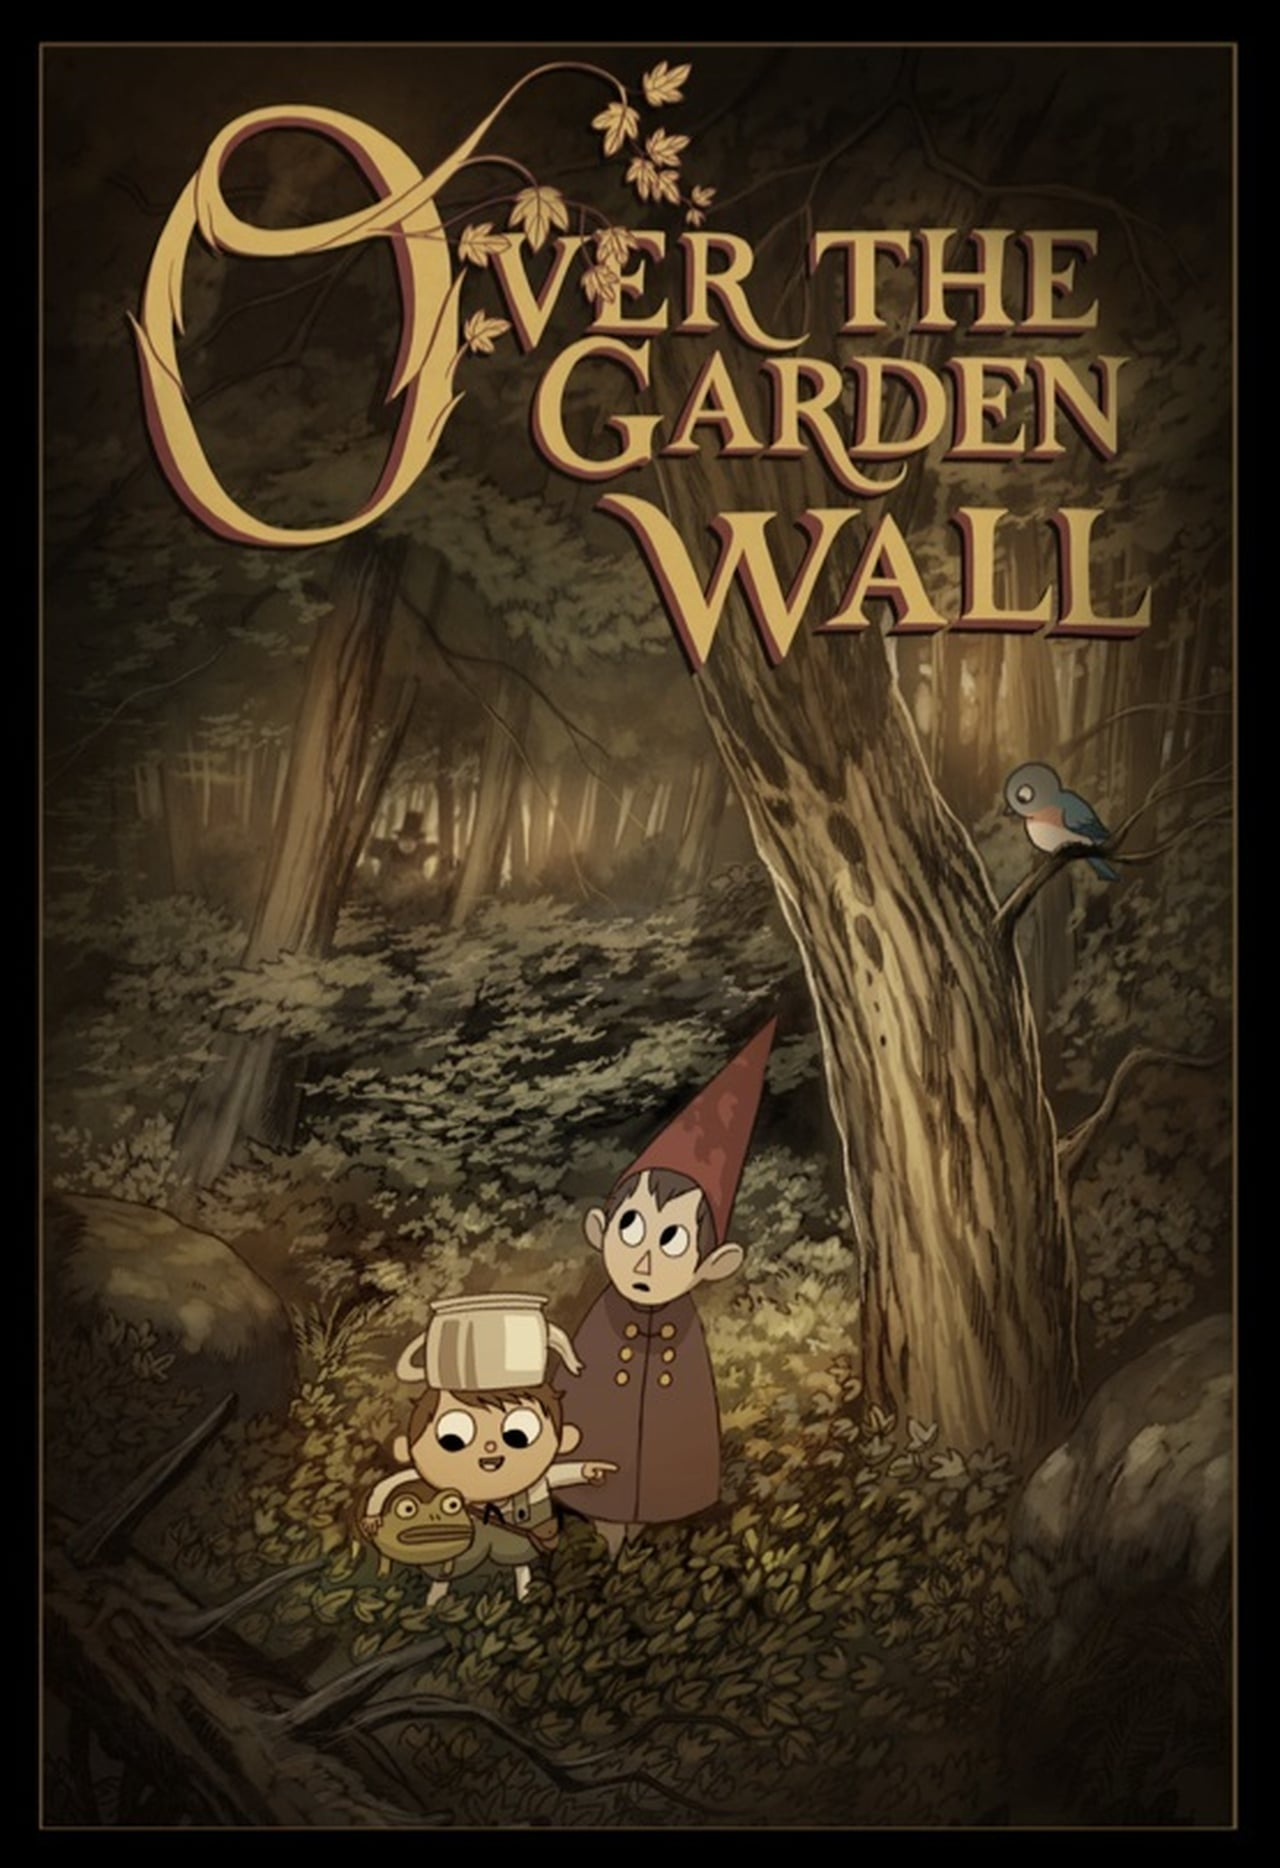 Putlocker Over The Garden Wall Season 1 (2014)